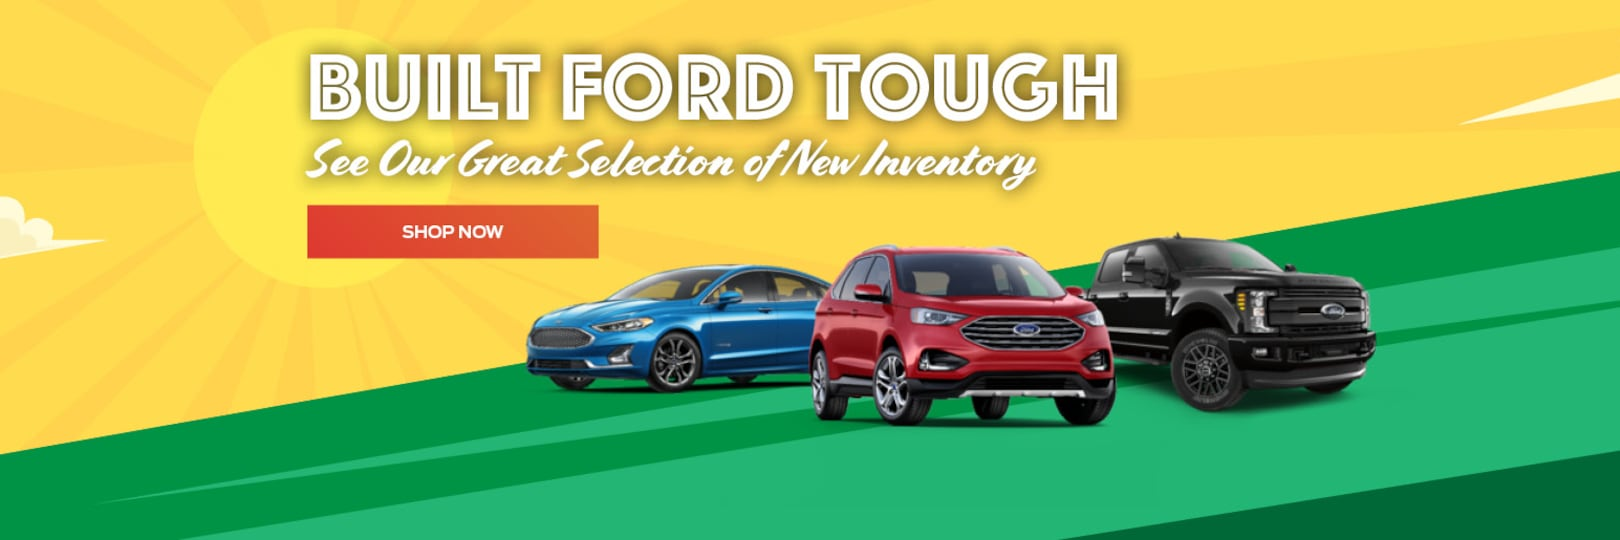 Sugar Loaf Ford Lincoln Inc  | Lincoln, Ford Dealership in